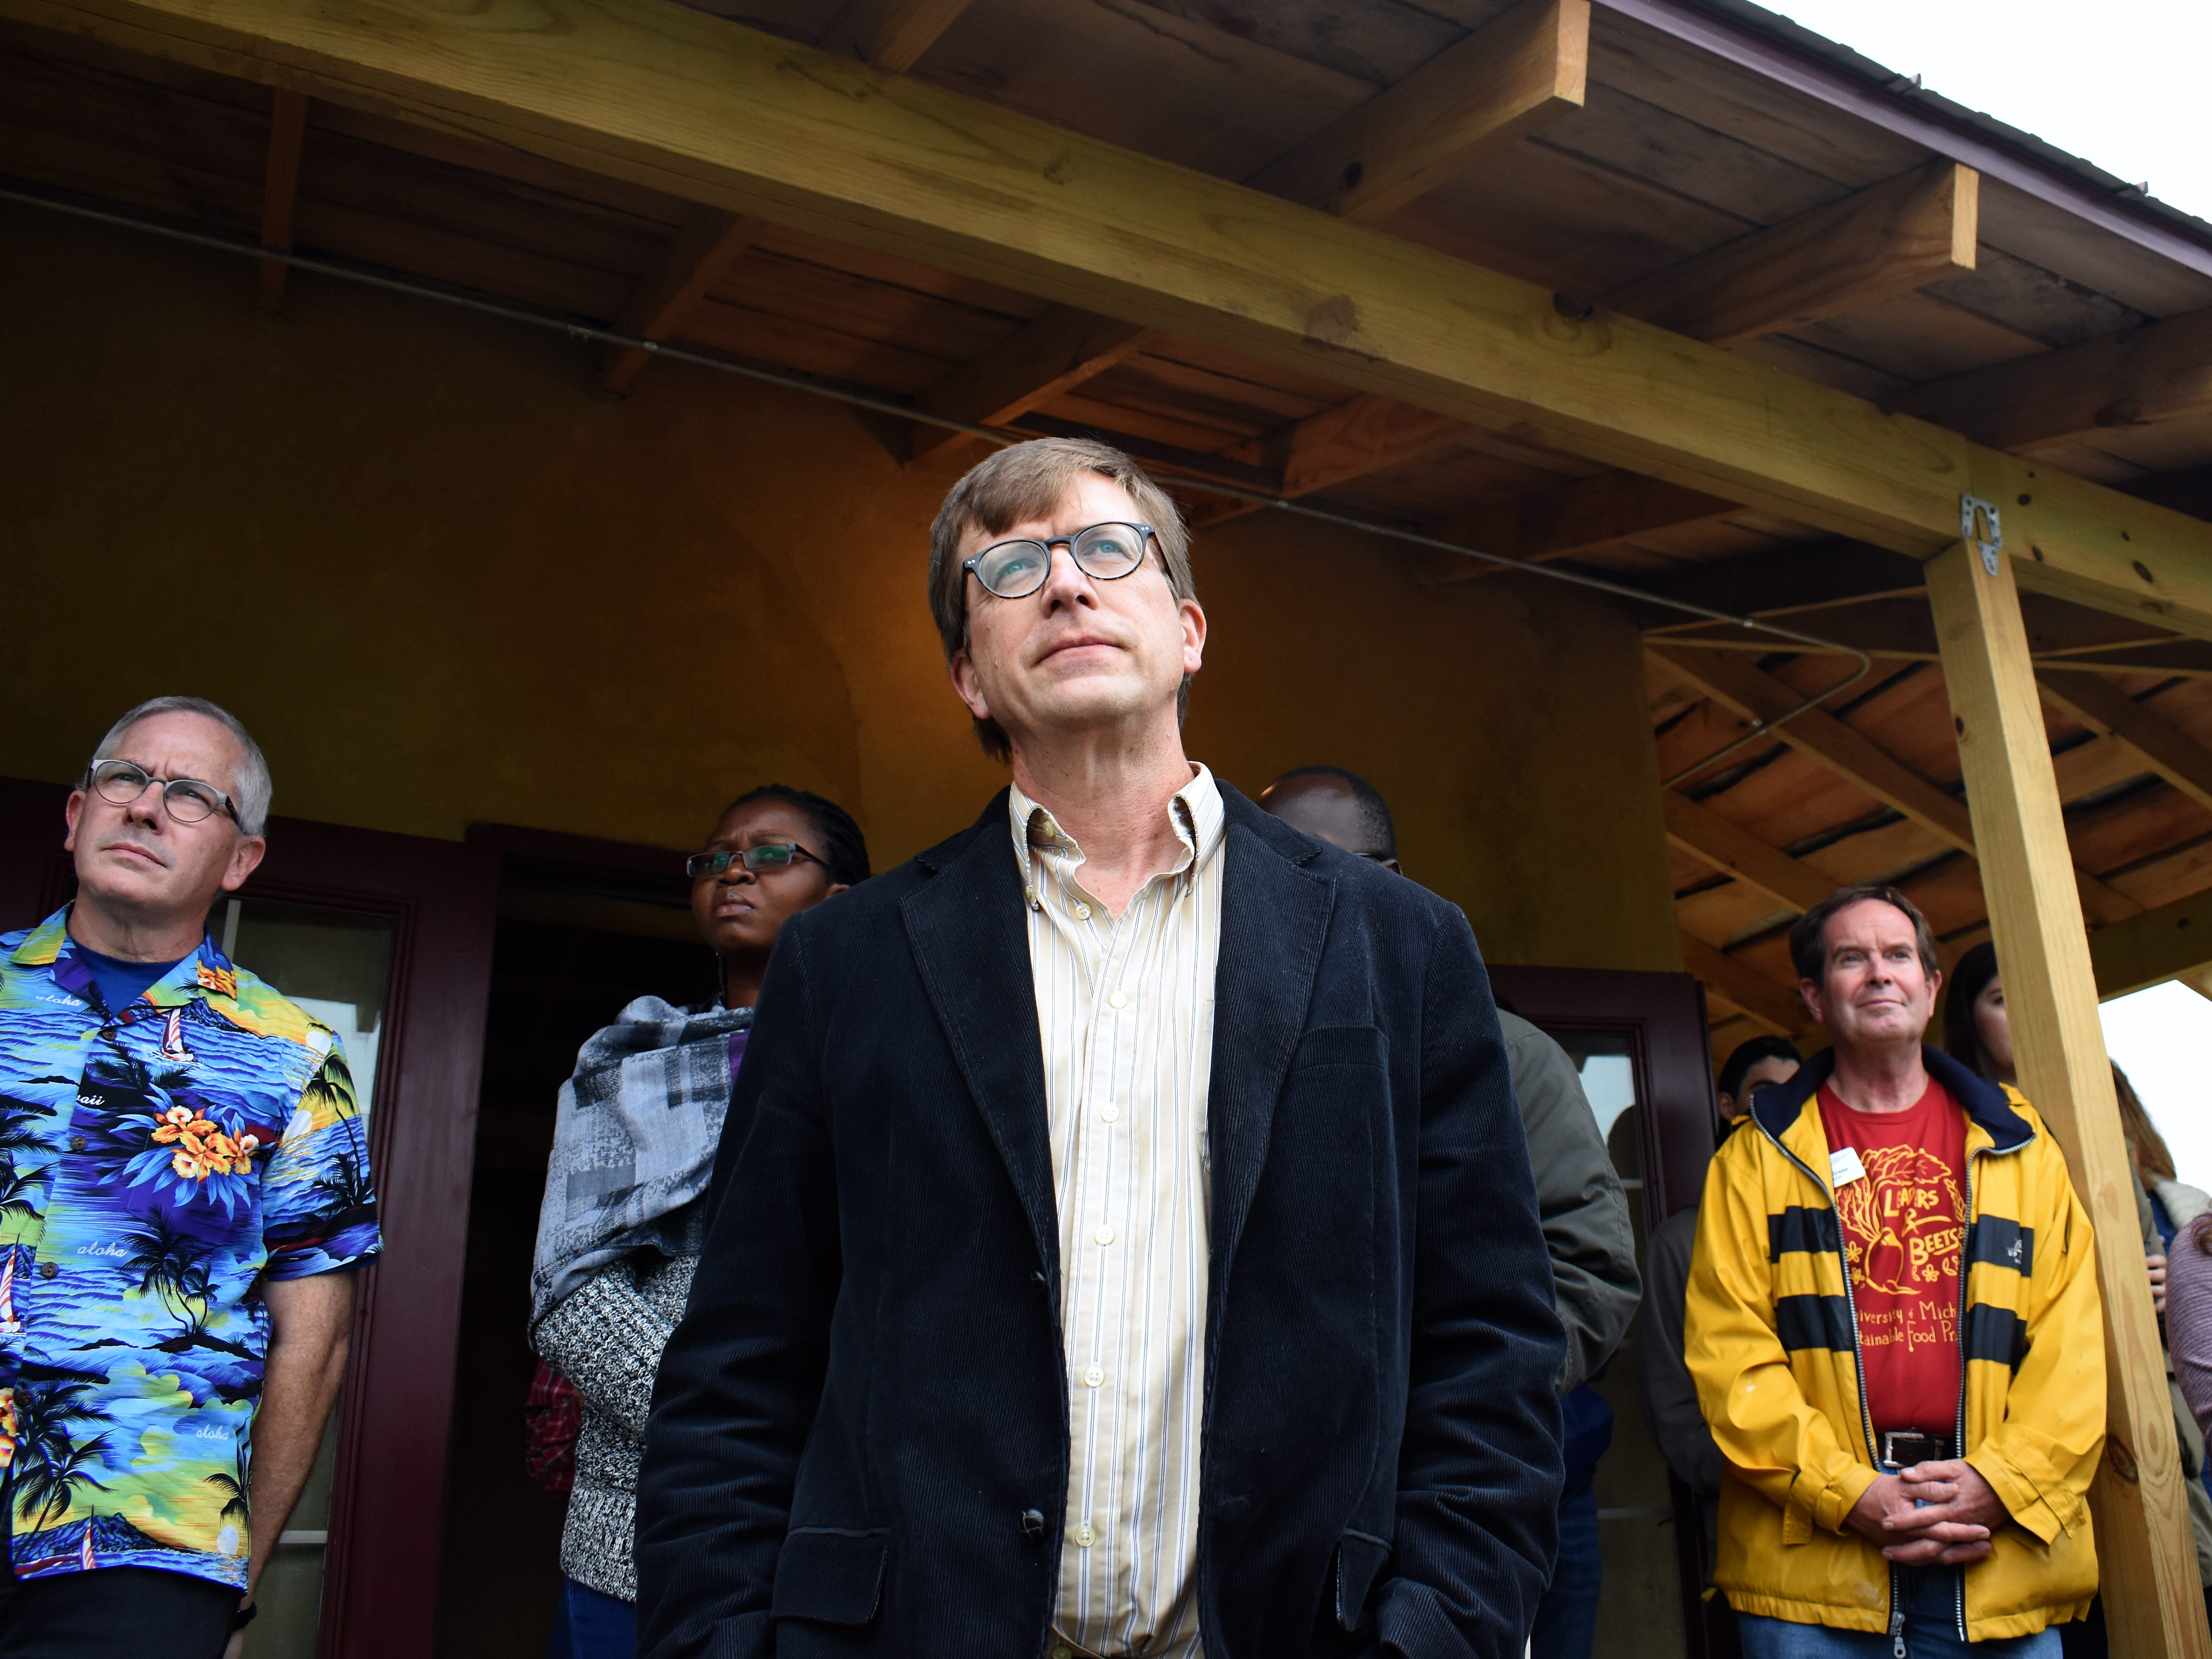 With visitors lining the porch, Art & Design Associate Professor Joe Trumpey, center, who led UM students in the creation of the Straw Bale Building, listens to speakers during a brief ceremony celebrating the natural building's public unveiling.